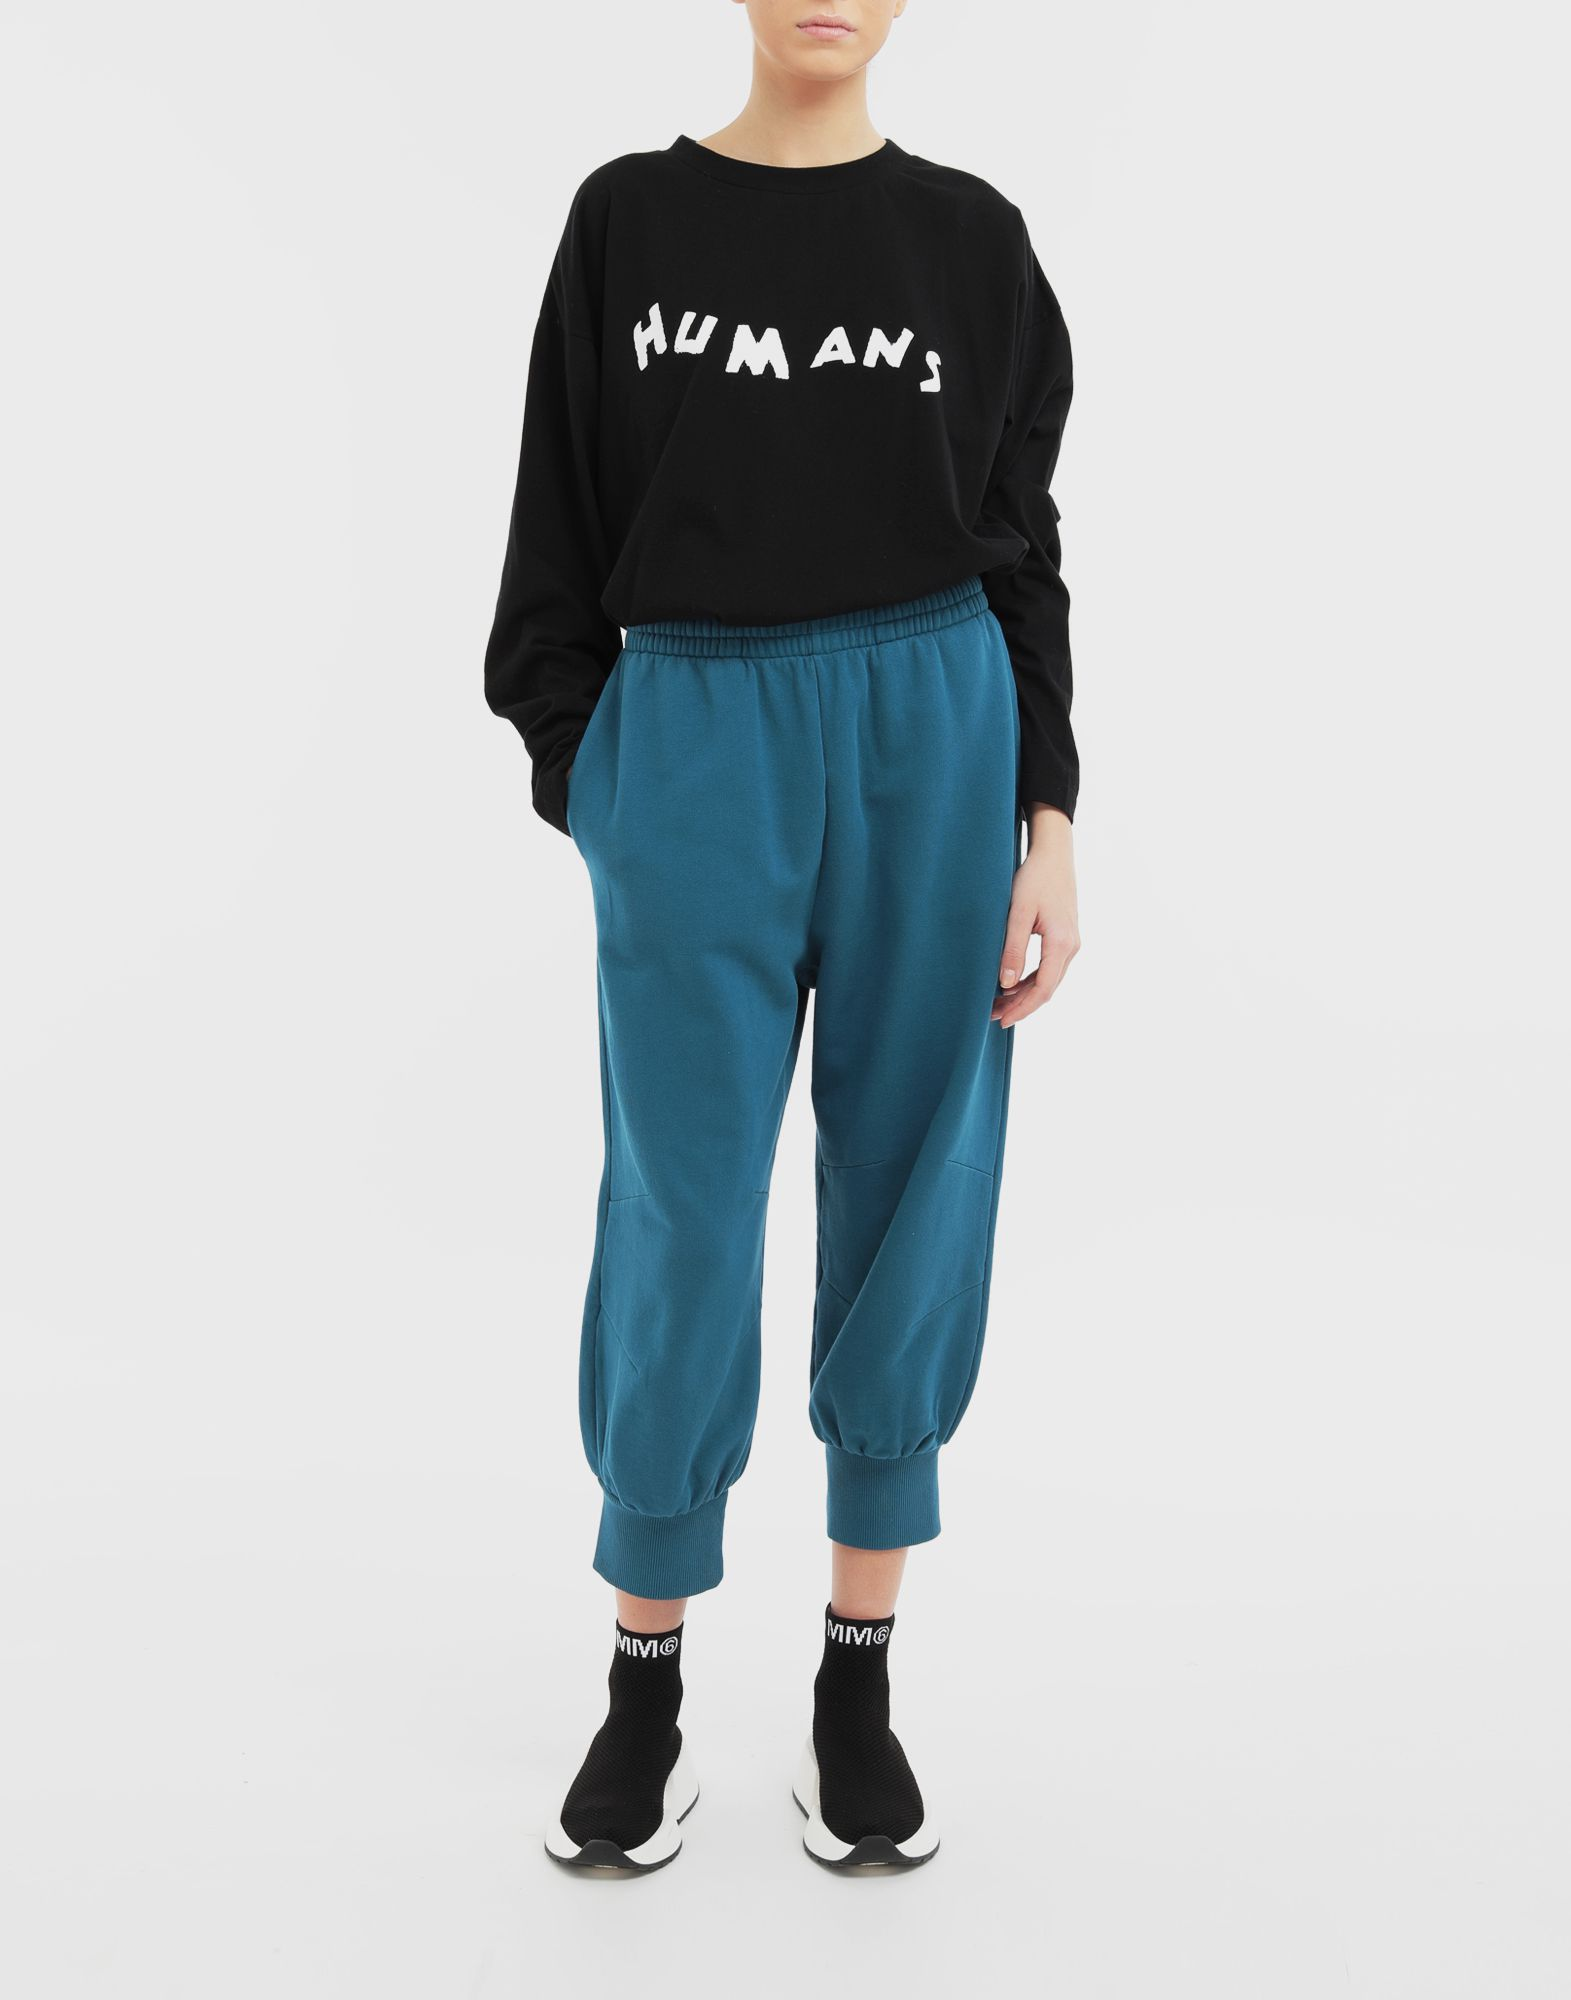 MM6 MAISON MARGIELA 'Humans' sweatshirt Long sleeve t-shirt Woman d